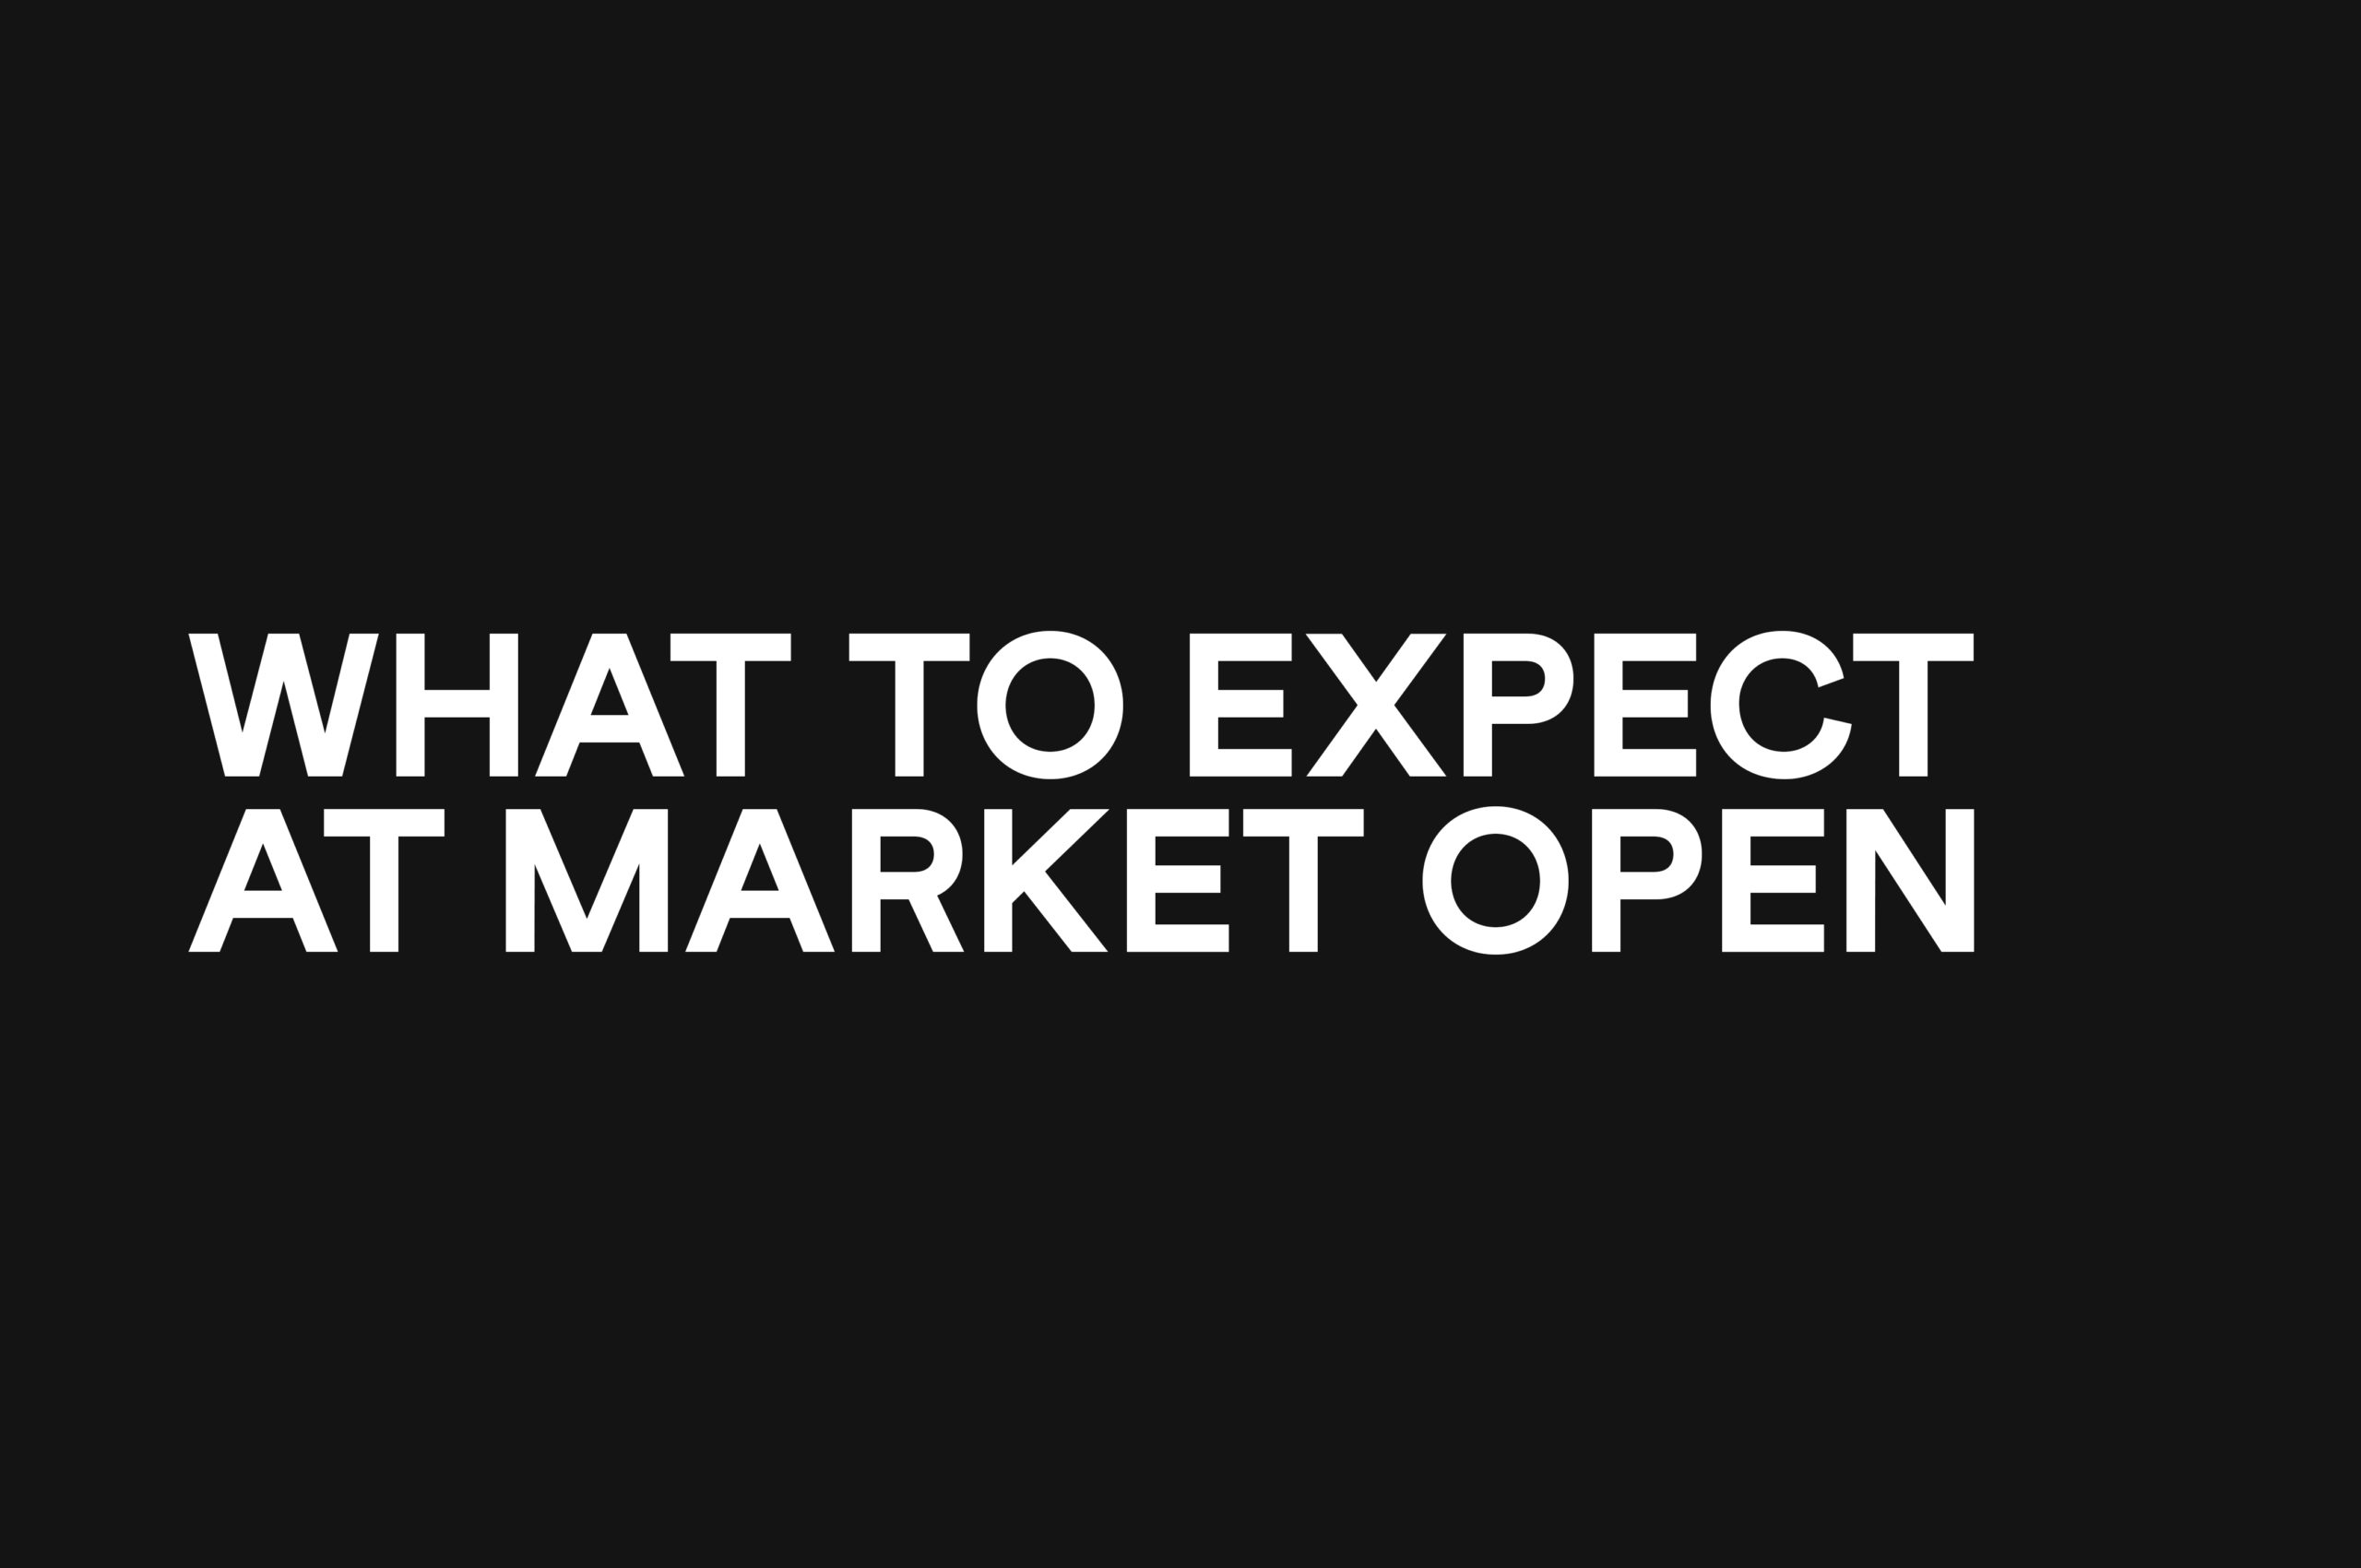 What to Expect at Market Open